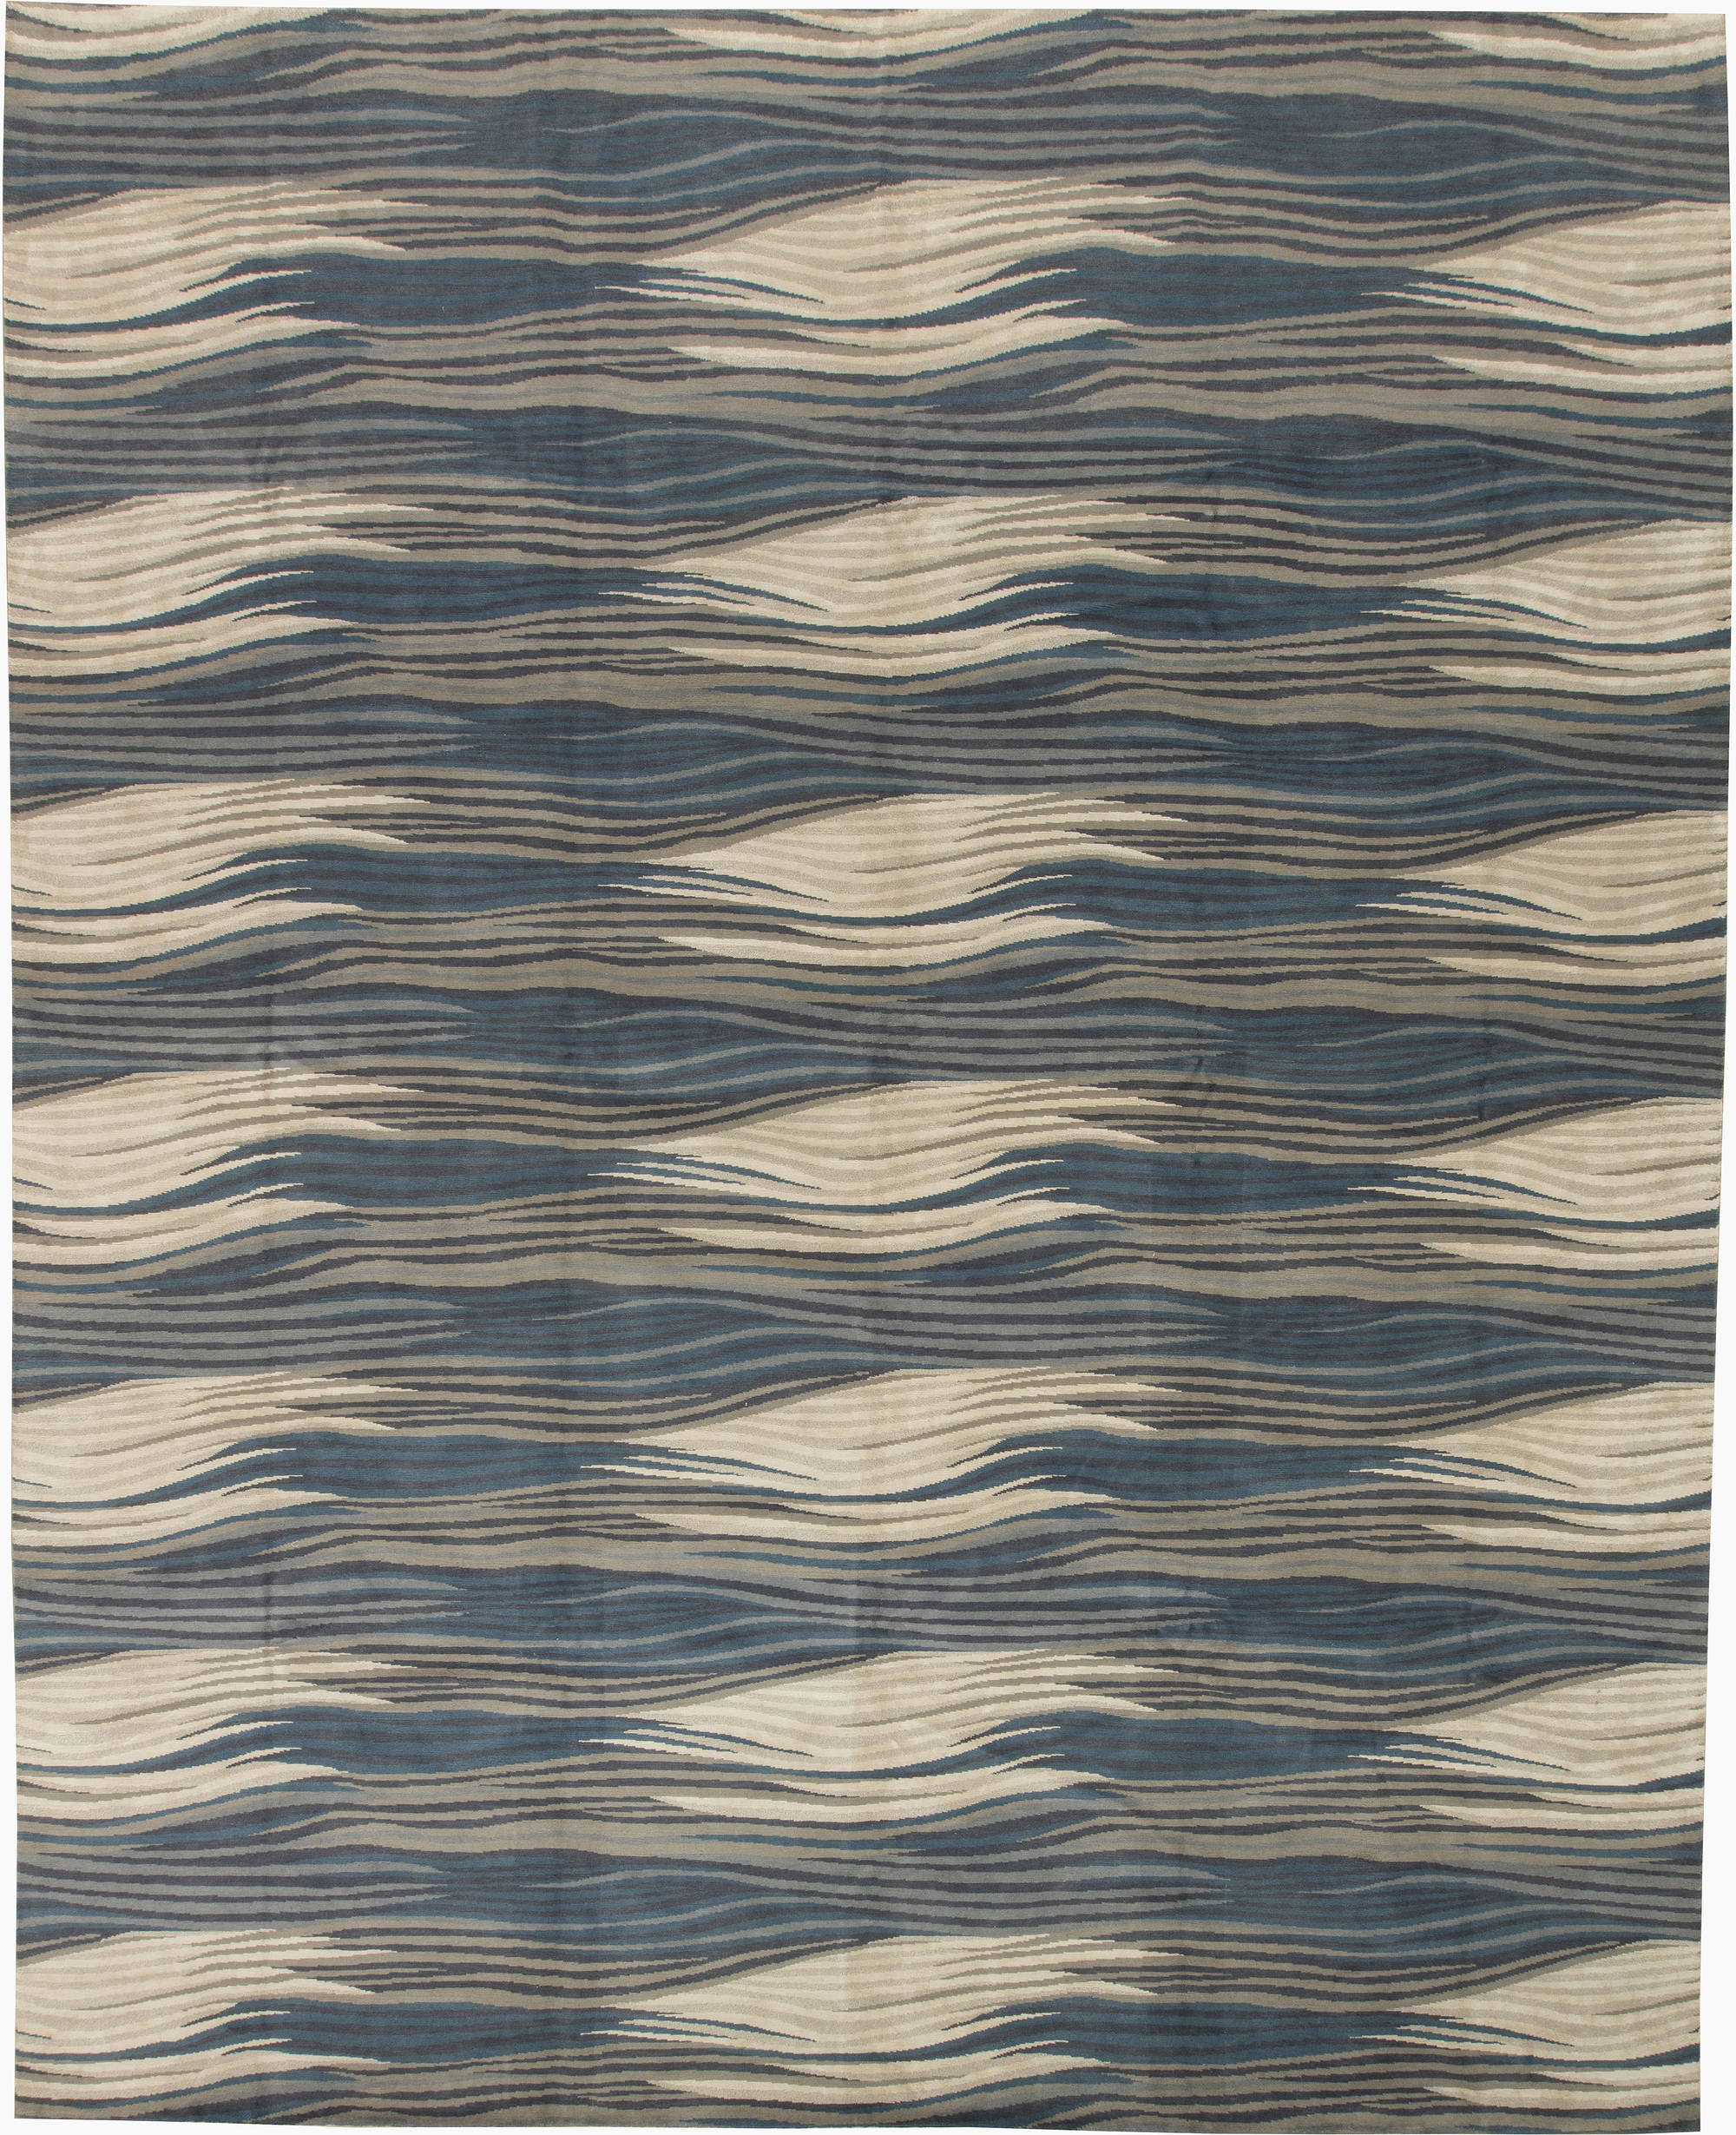 New Custom Rugs In Stock By Doris Leslie Blau New York - New patterned rugs designs